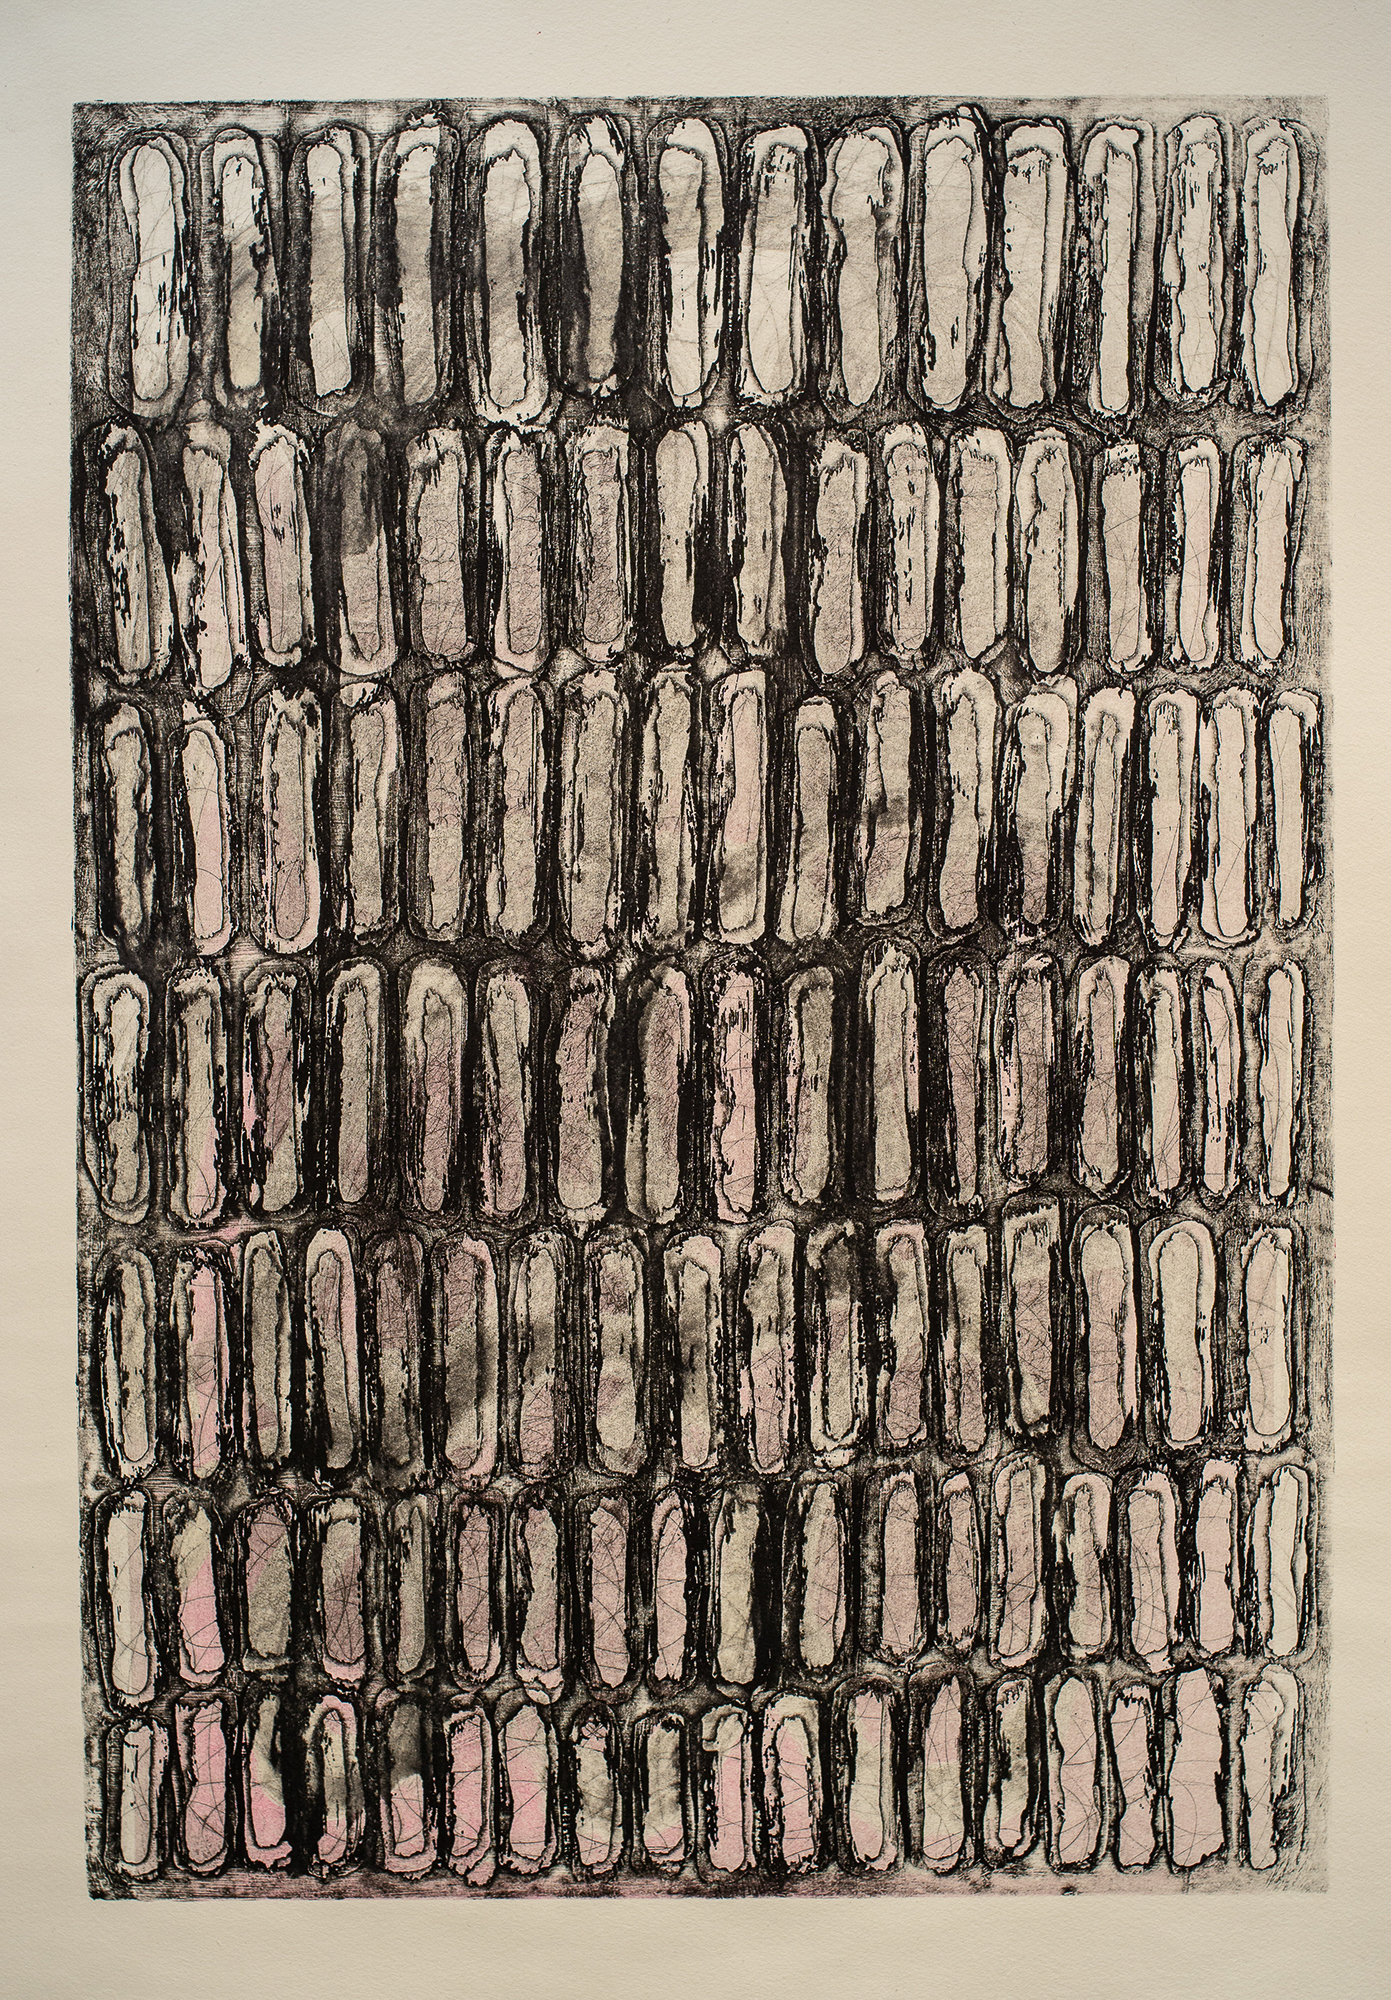 One Hundred and Eighteen Marks , copperplate open bite, drypoint and aquatint etching, 22-1/4 x 33-1/2 inches